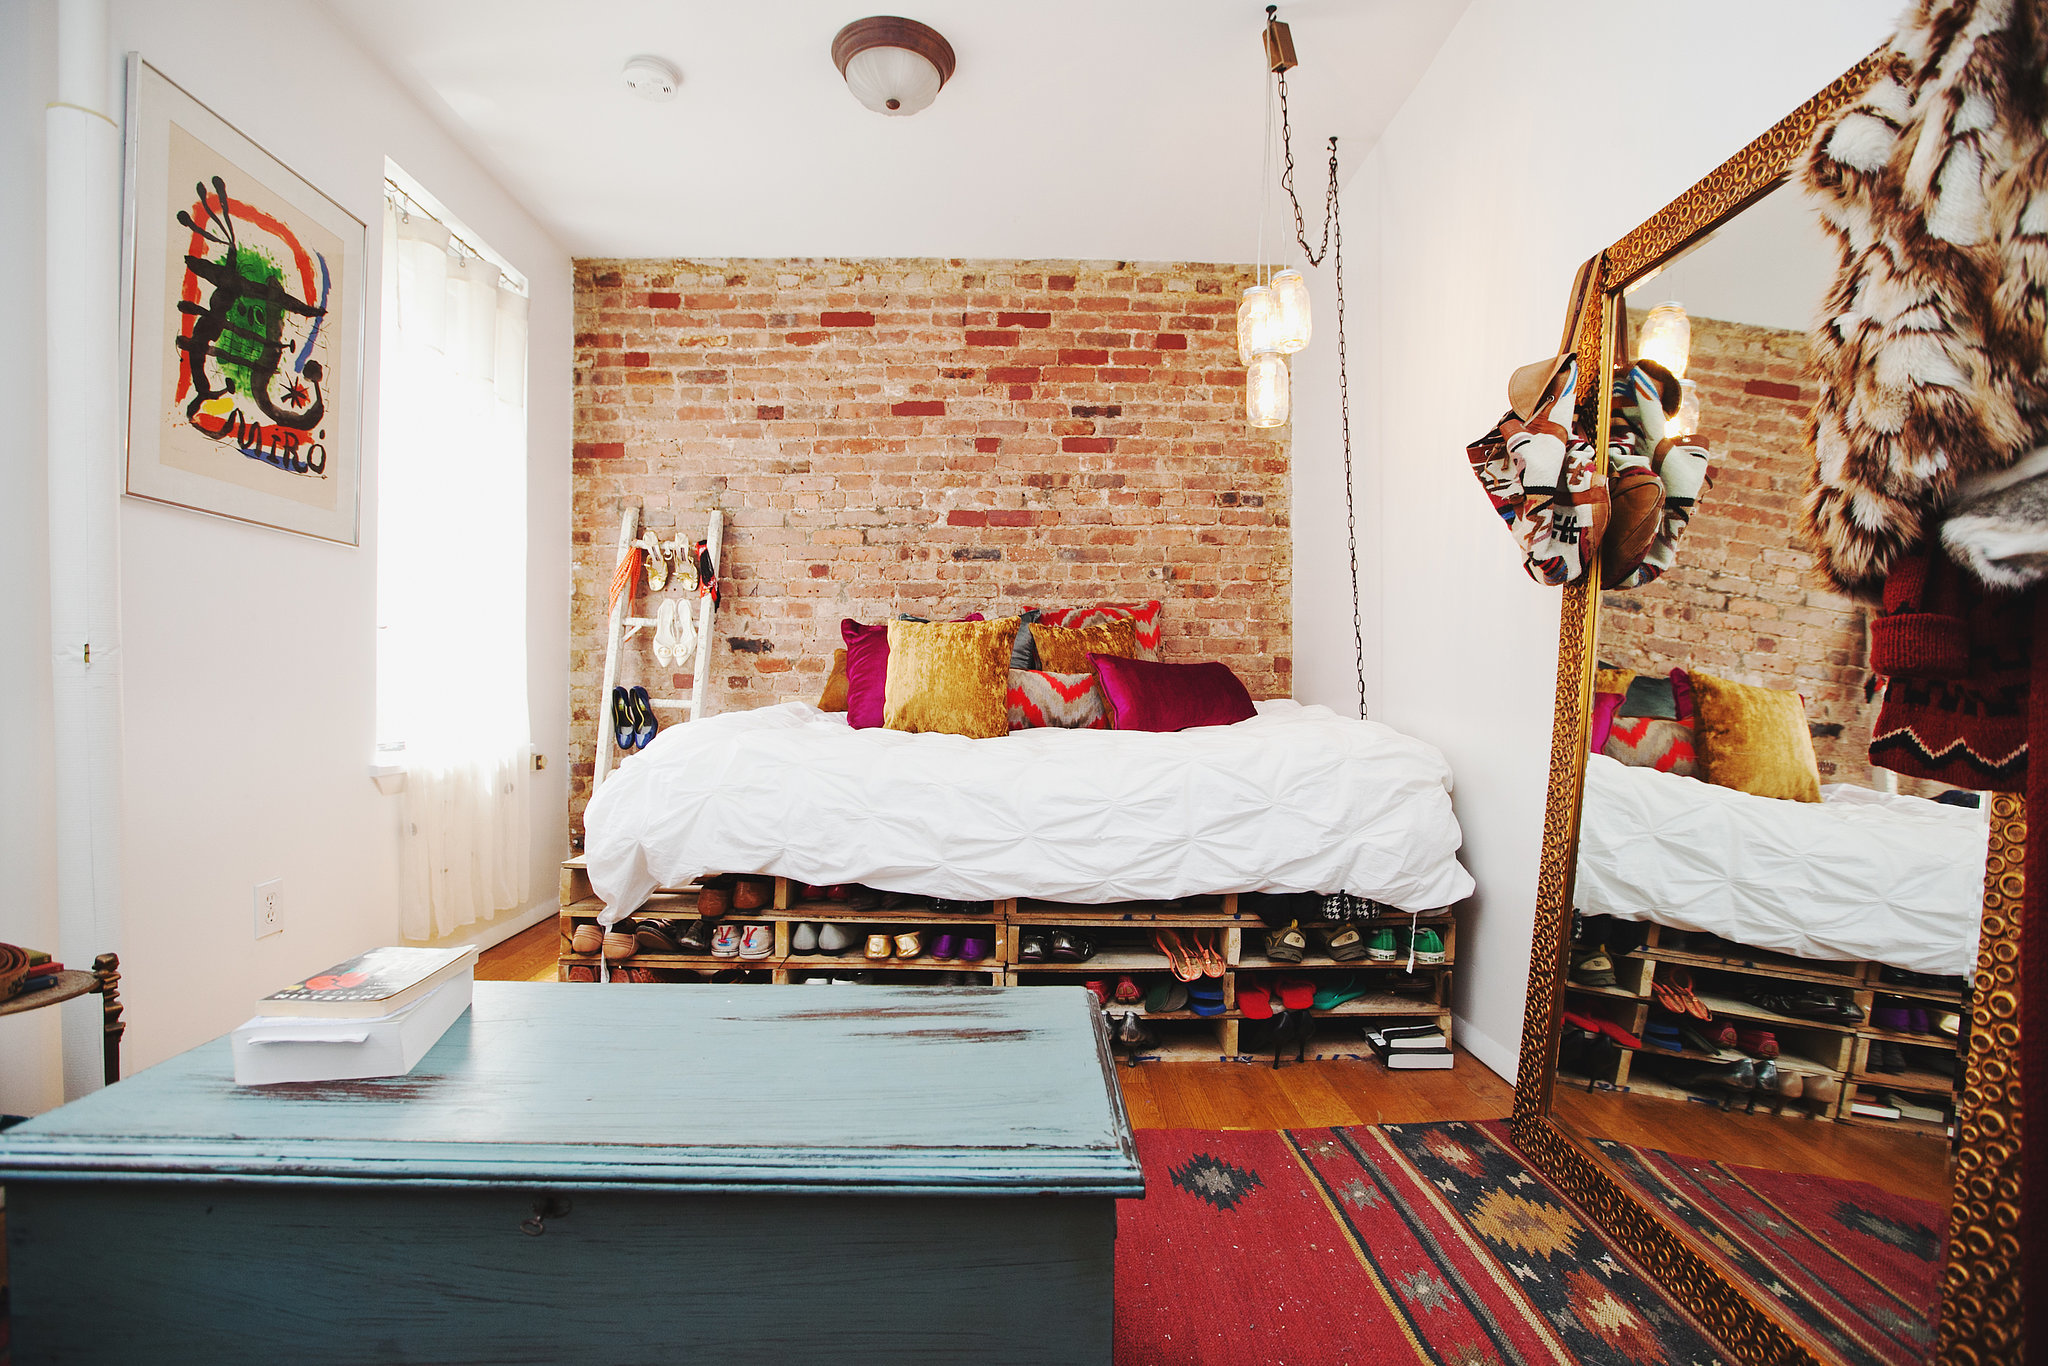 Now light and bright, this city studio has an eclectic, California vibe.  Photo by Chellise Michael via Homepolish